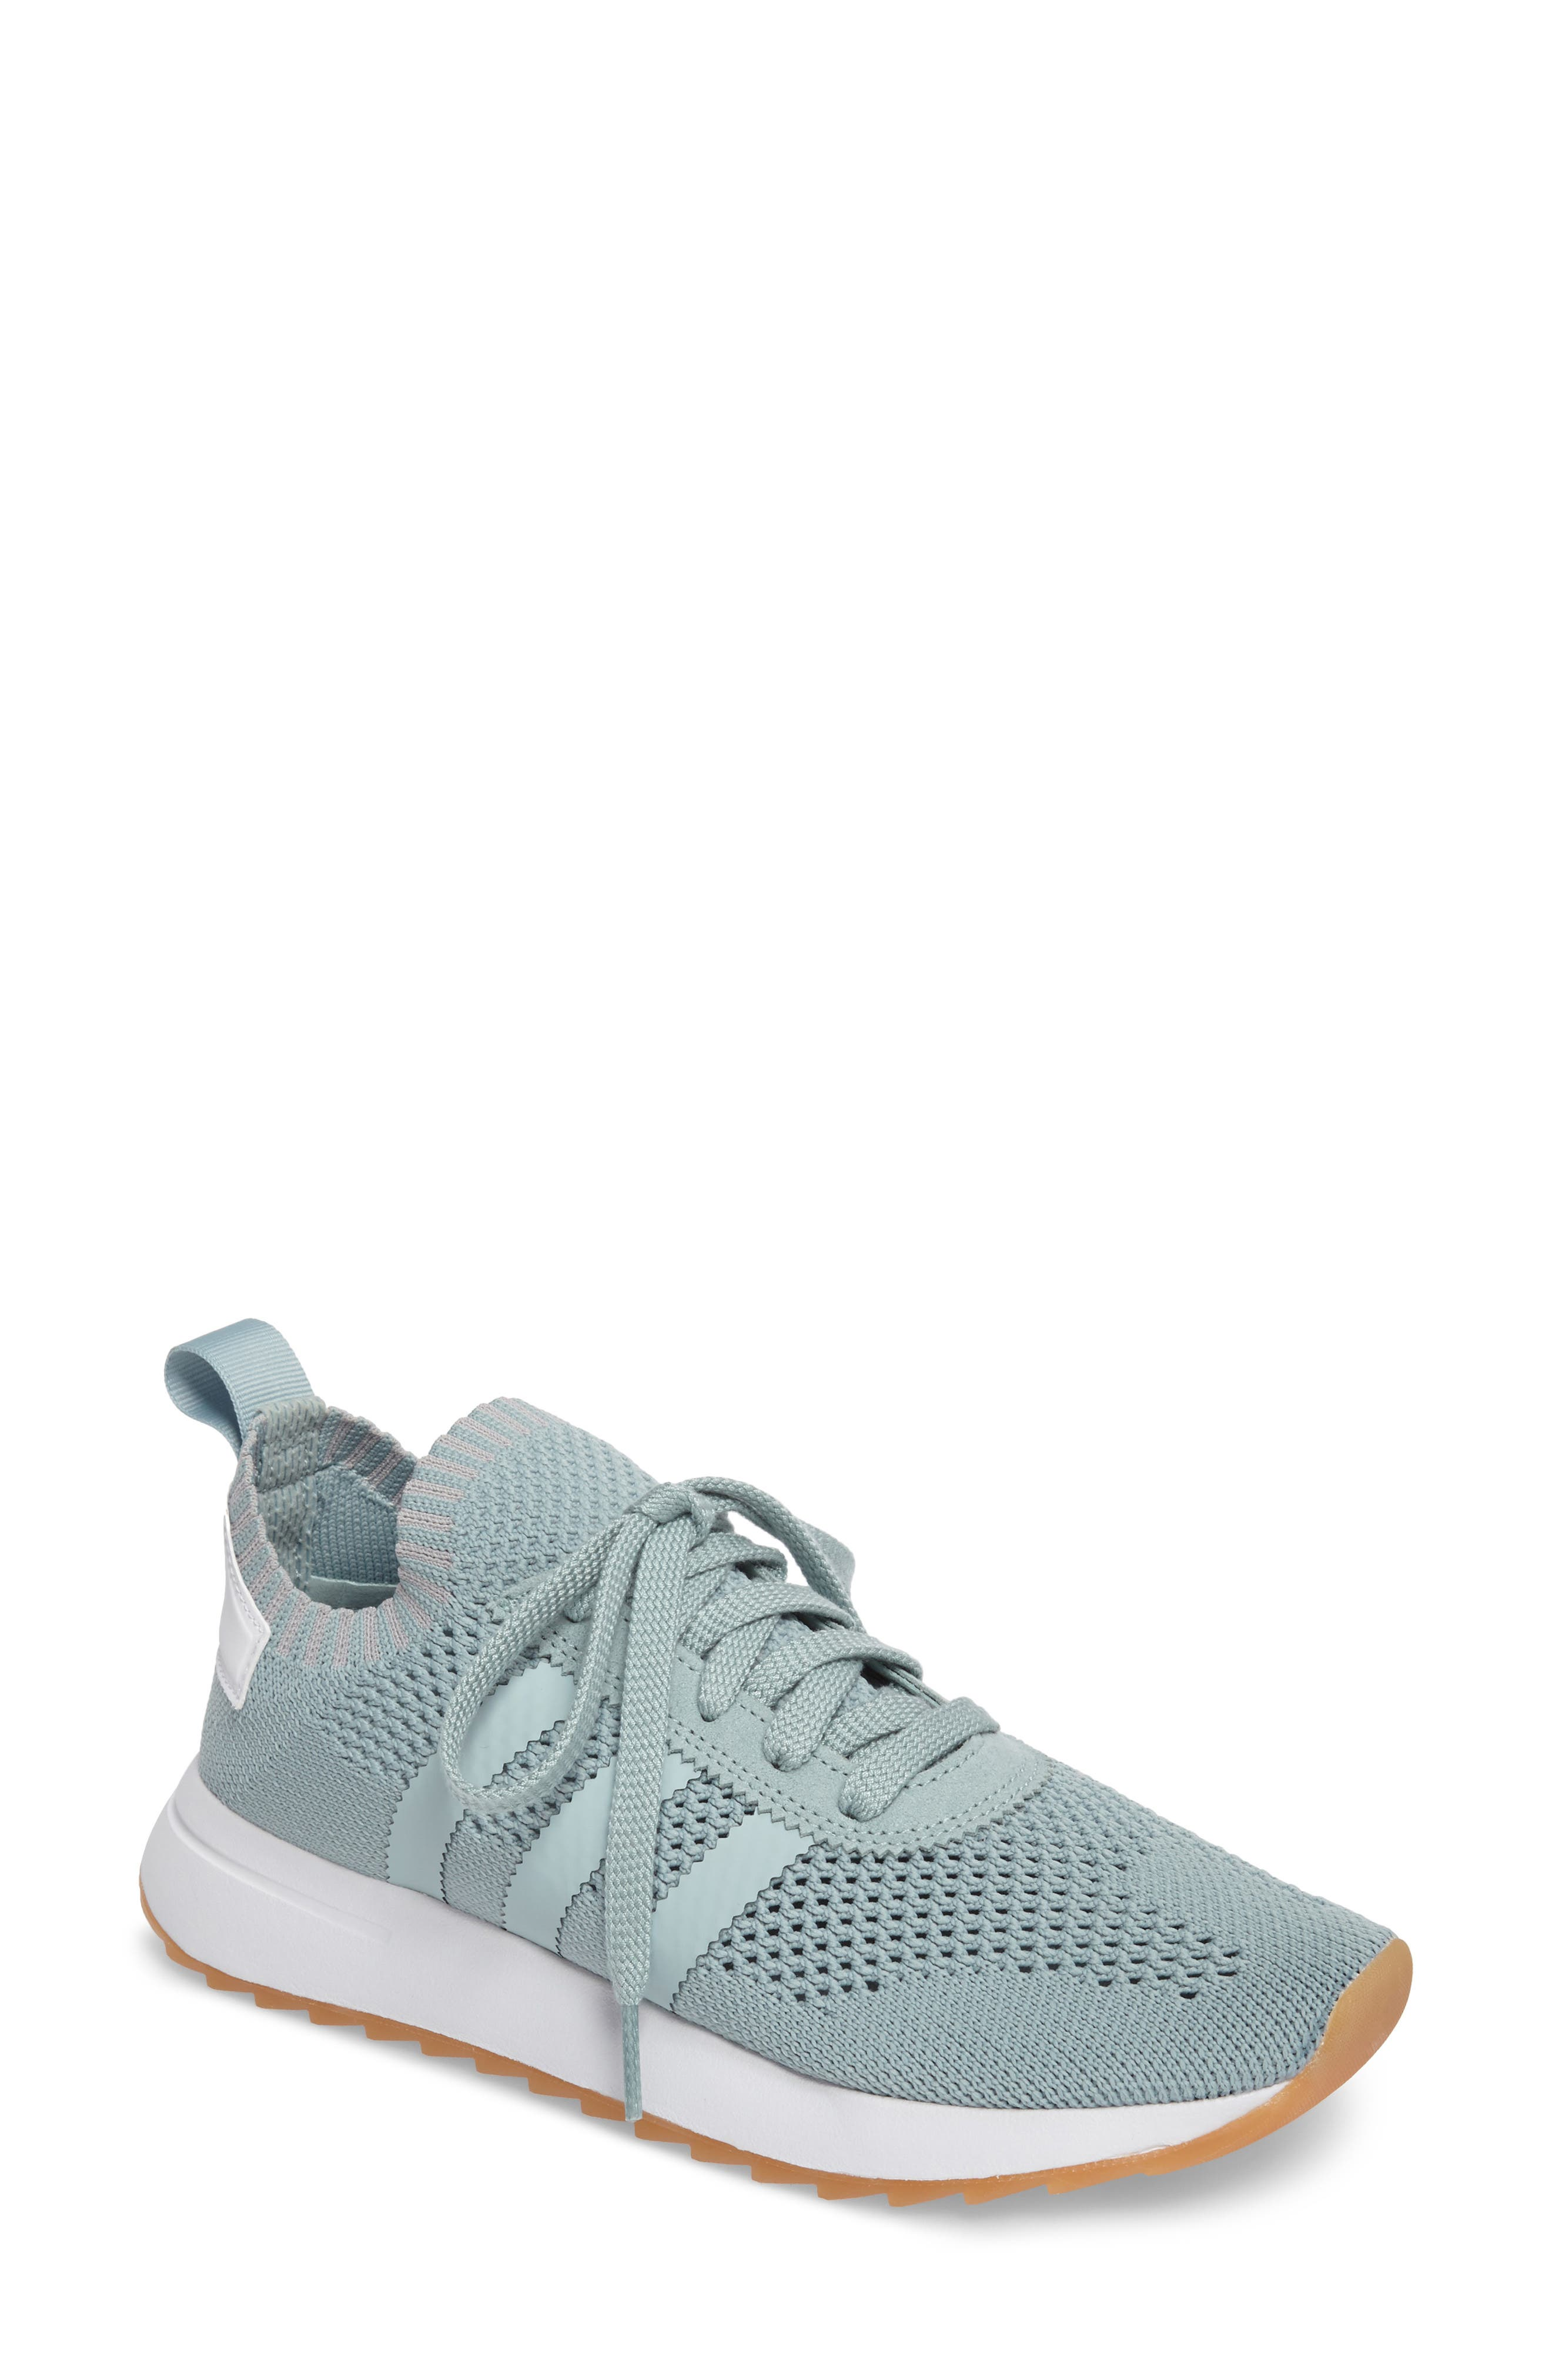 Flashback Primeknit Sneaker,                             Main thumbnail 1, color,                             312